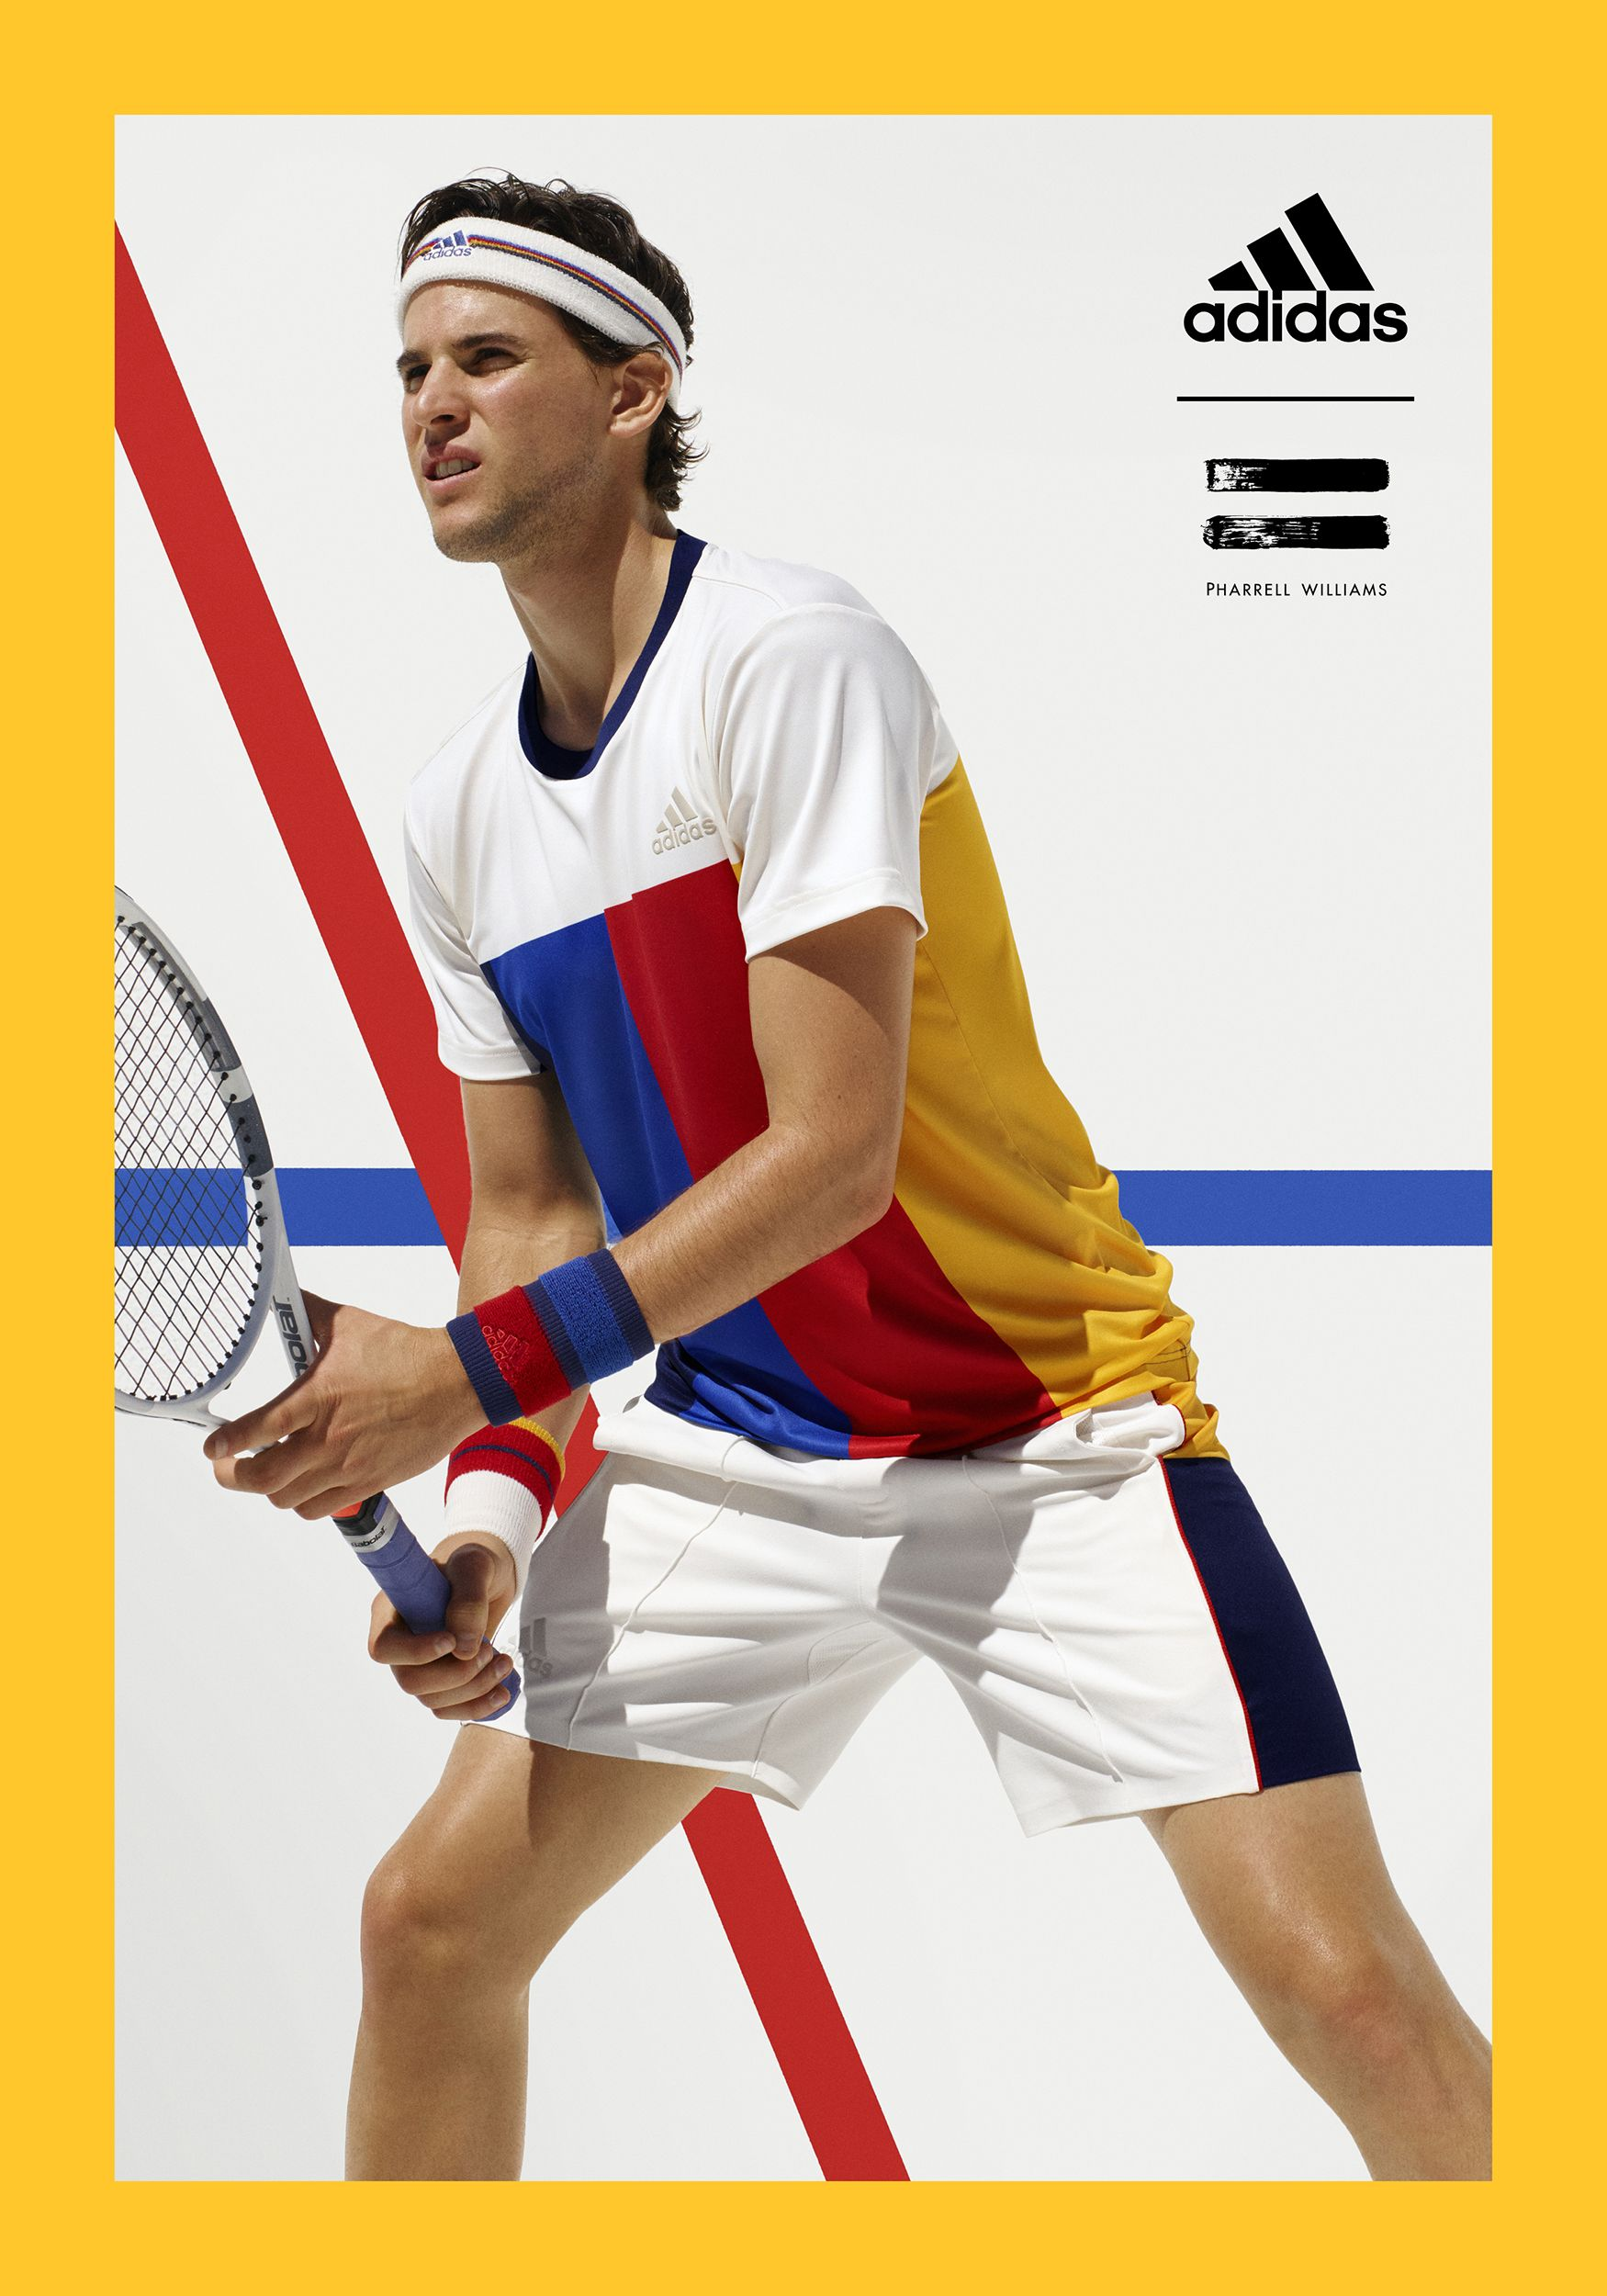 Adidas Tennis Pharrell Williams Collection Us Open 4 Sports Advertising Adidas Advertising Adidas Poster